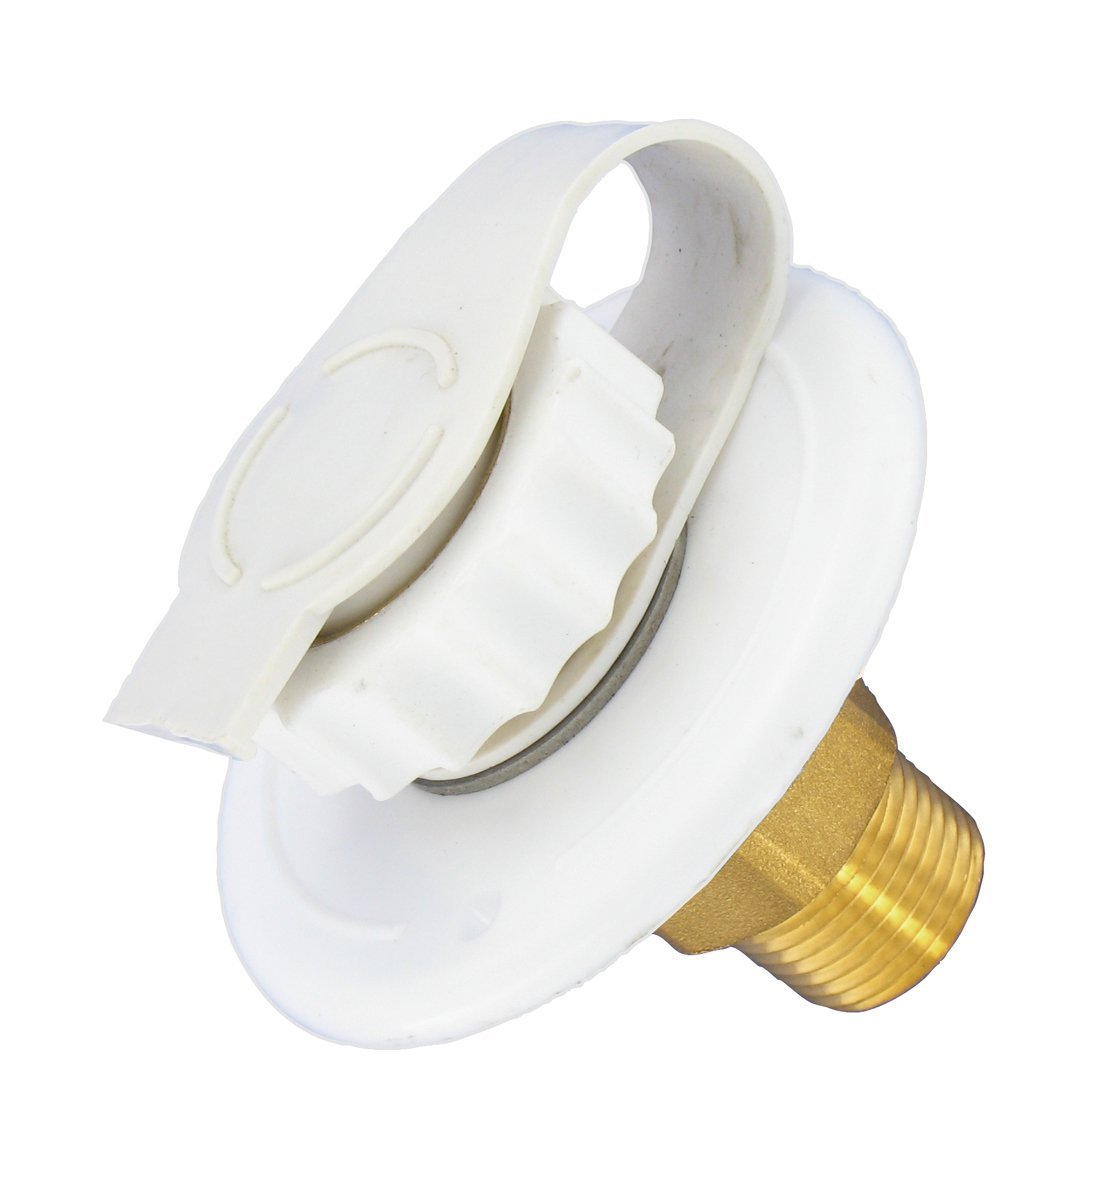 "A01-0170LF White 2-3/4"" MPT Lead-Free Flush Mount Water Inlet, Water R920TW Fresh Fill LLC RV Inchmtl 27 A010170LF Mount True A010171LF FPT Inlet Trailer BulkLf MPT.., By Valterra"